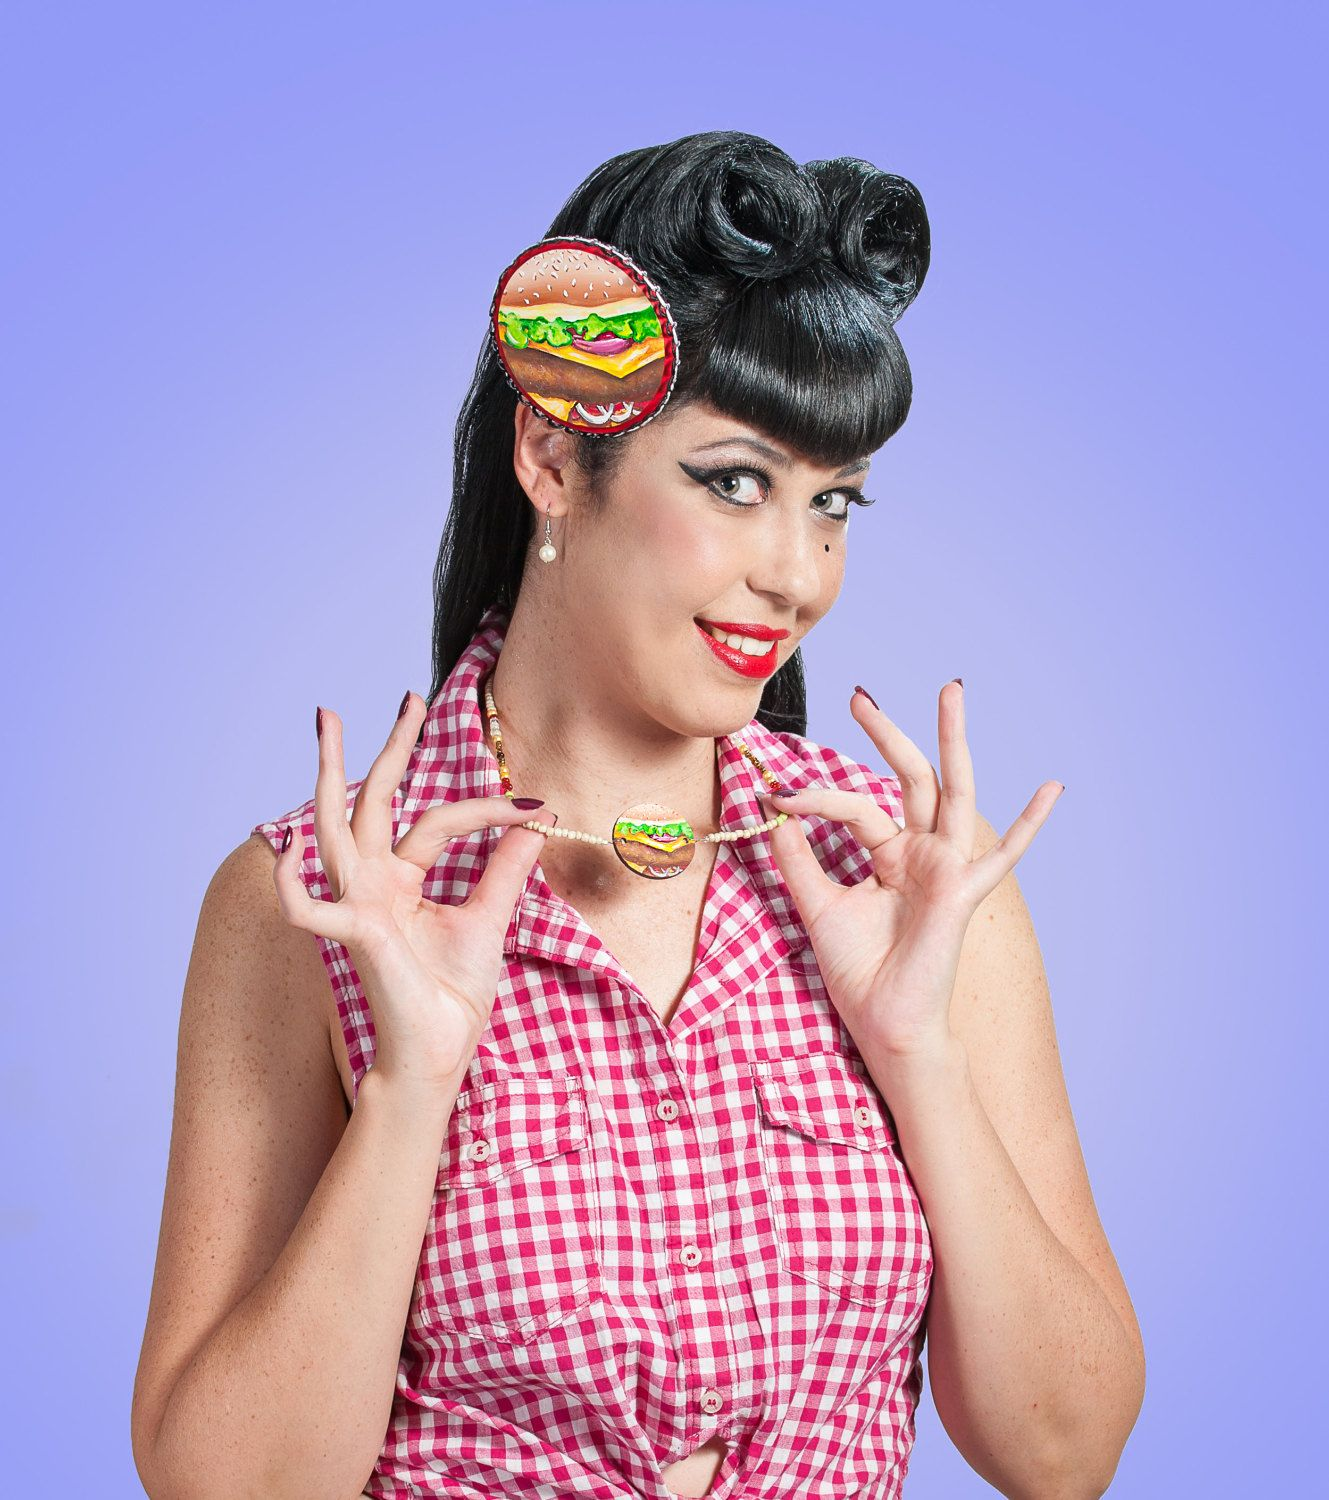 #Wearable #art,#mini #art #jewelry,#Burger #jewelry,#foodjewelry,#hamburger necklaces,#vintagejewelry,#Rockabilly jewelry,#Pinup #accessory,#vegan love by #VioletVanilla on #Etsy